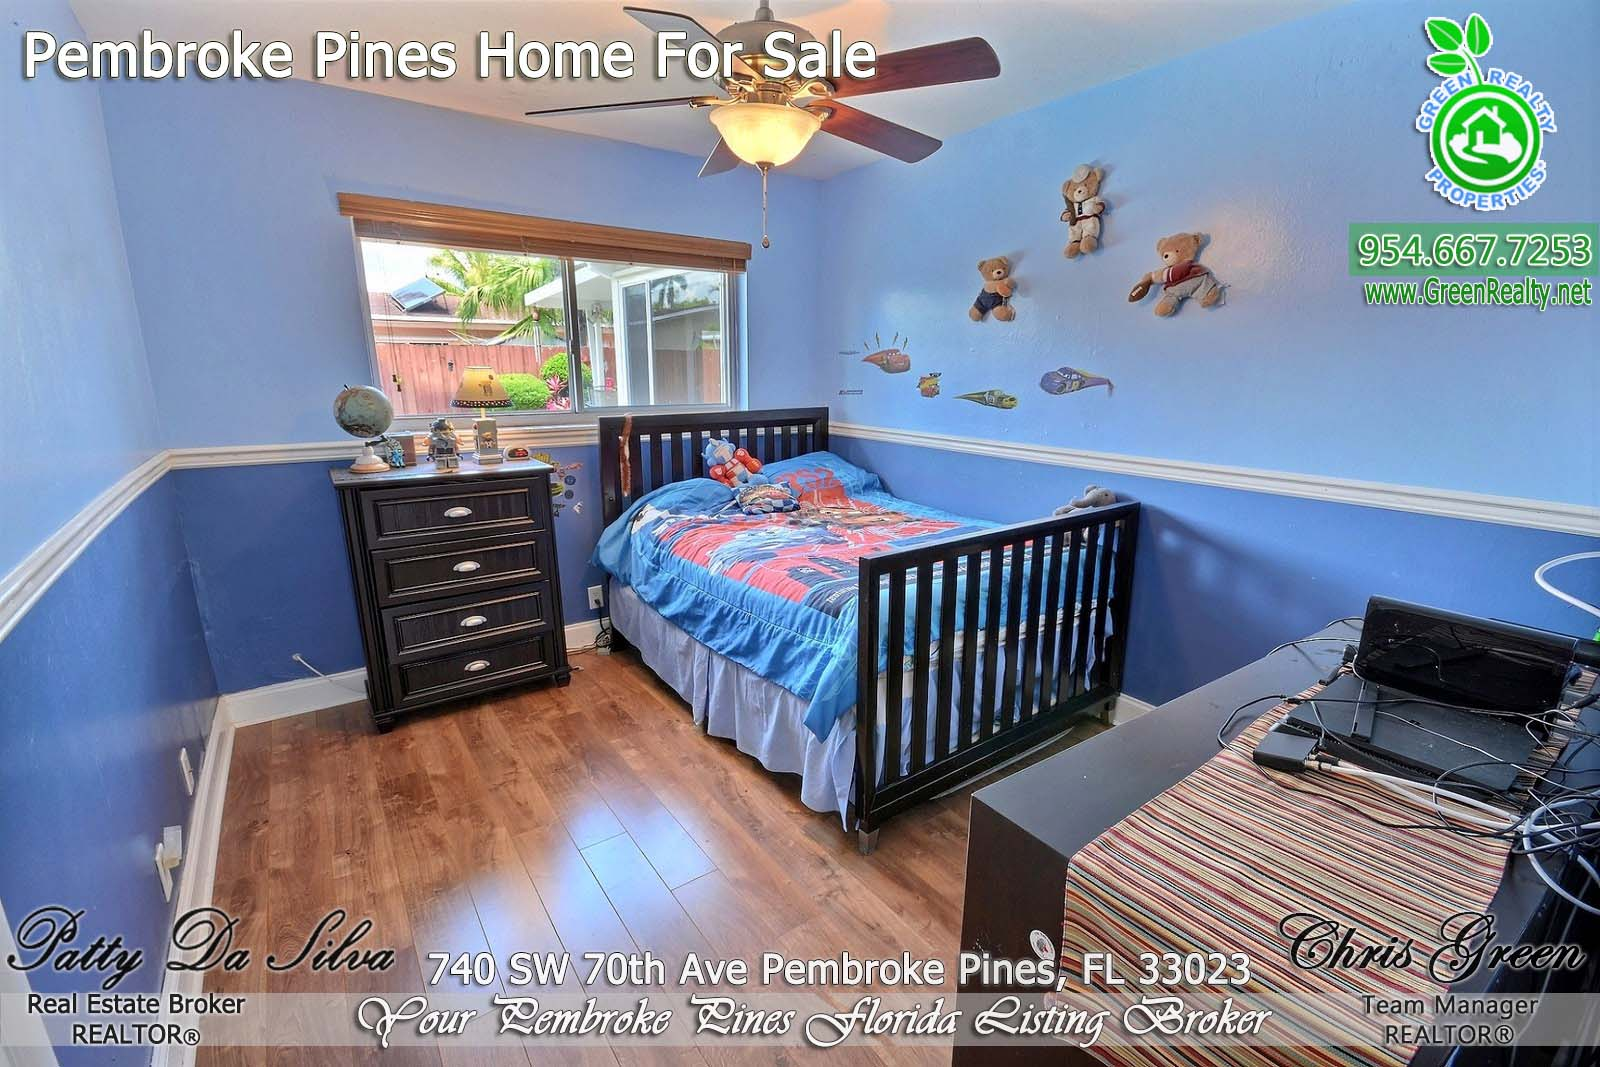 18 Pembroke Pines Real Estate Agents (4)